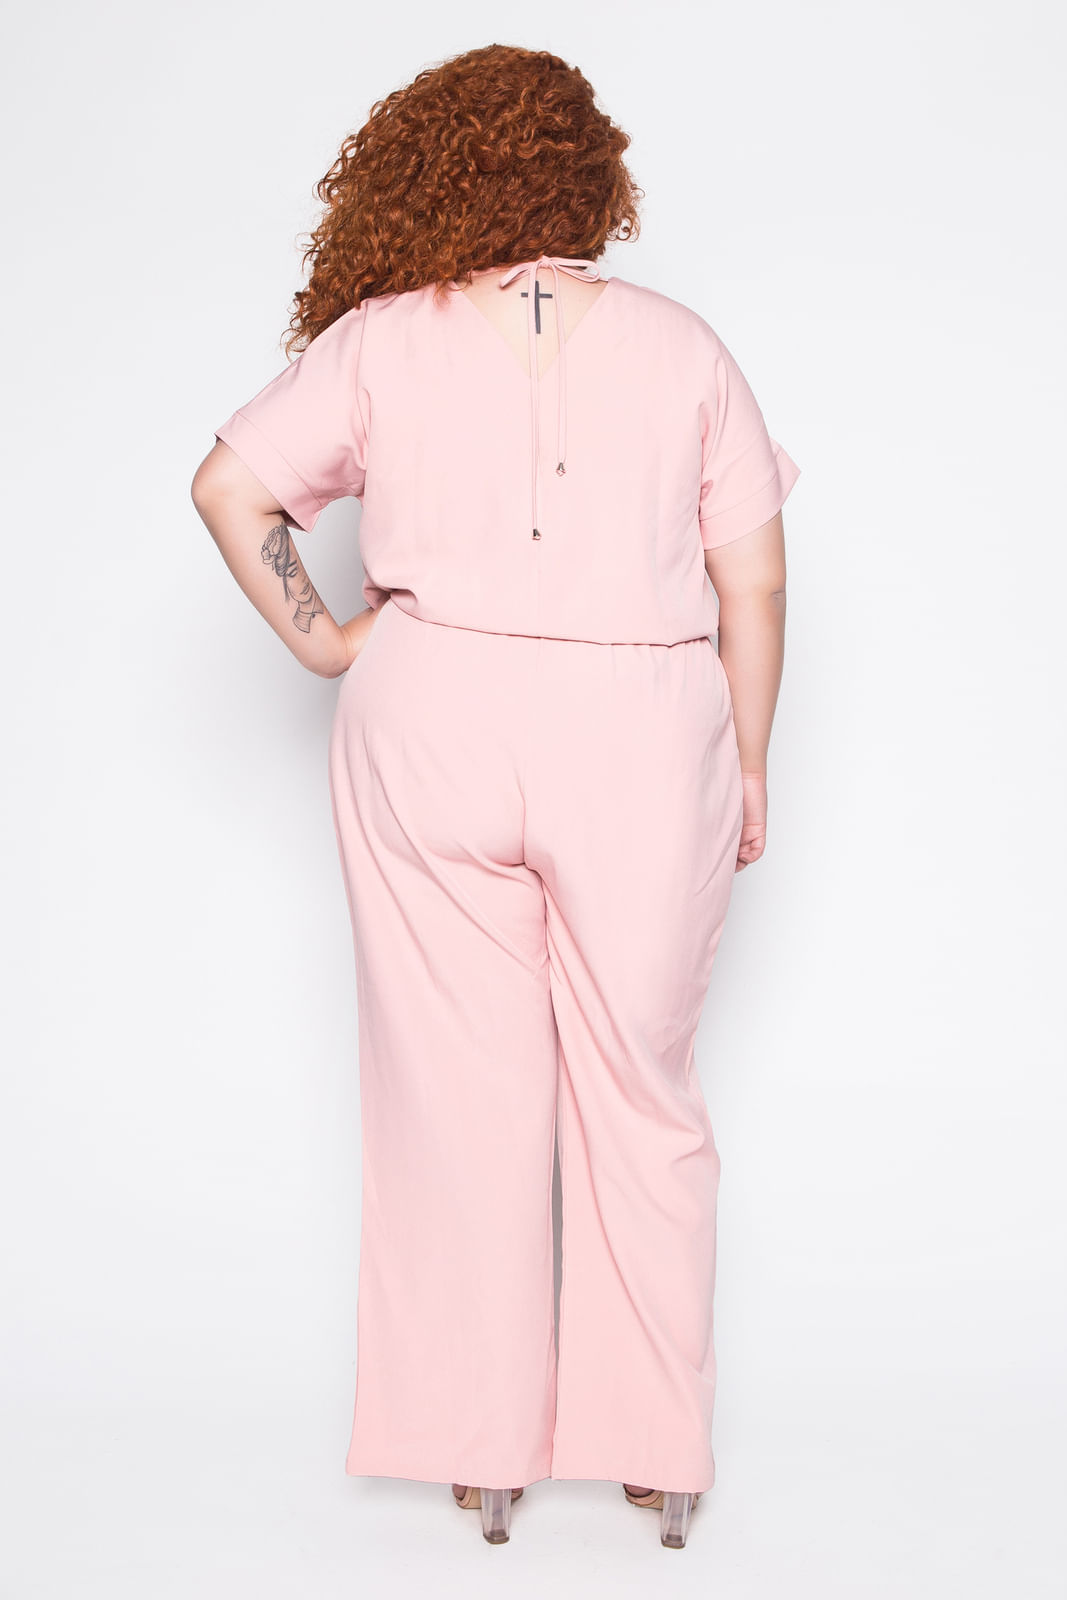 9811_Macacao_Plus_Size_Liso_Rose_4